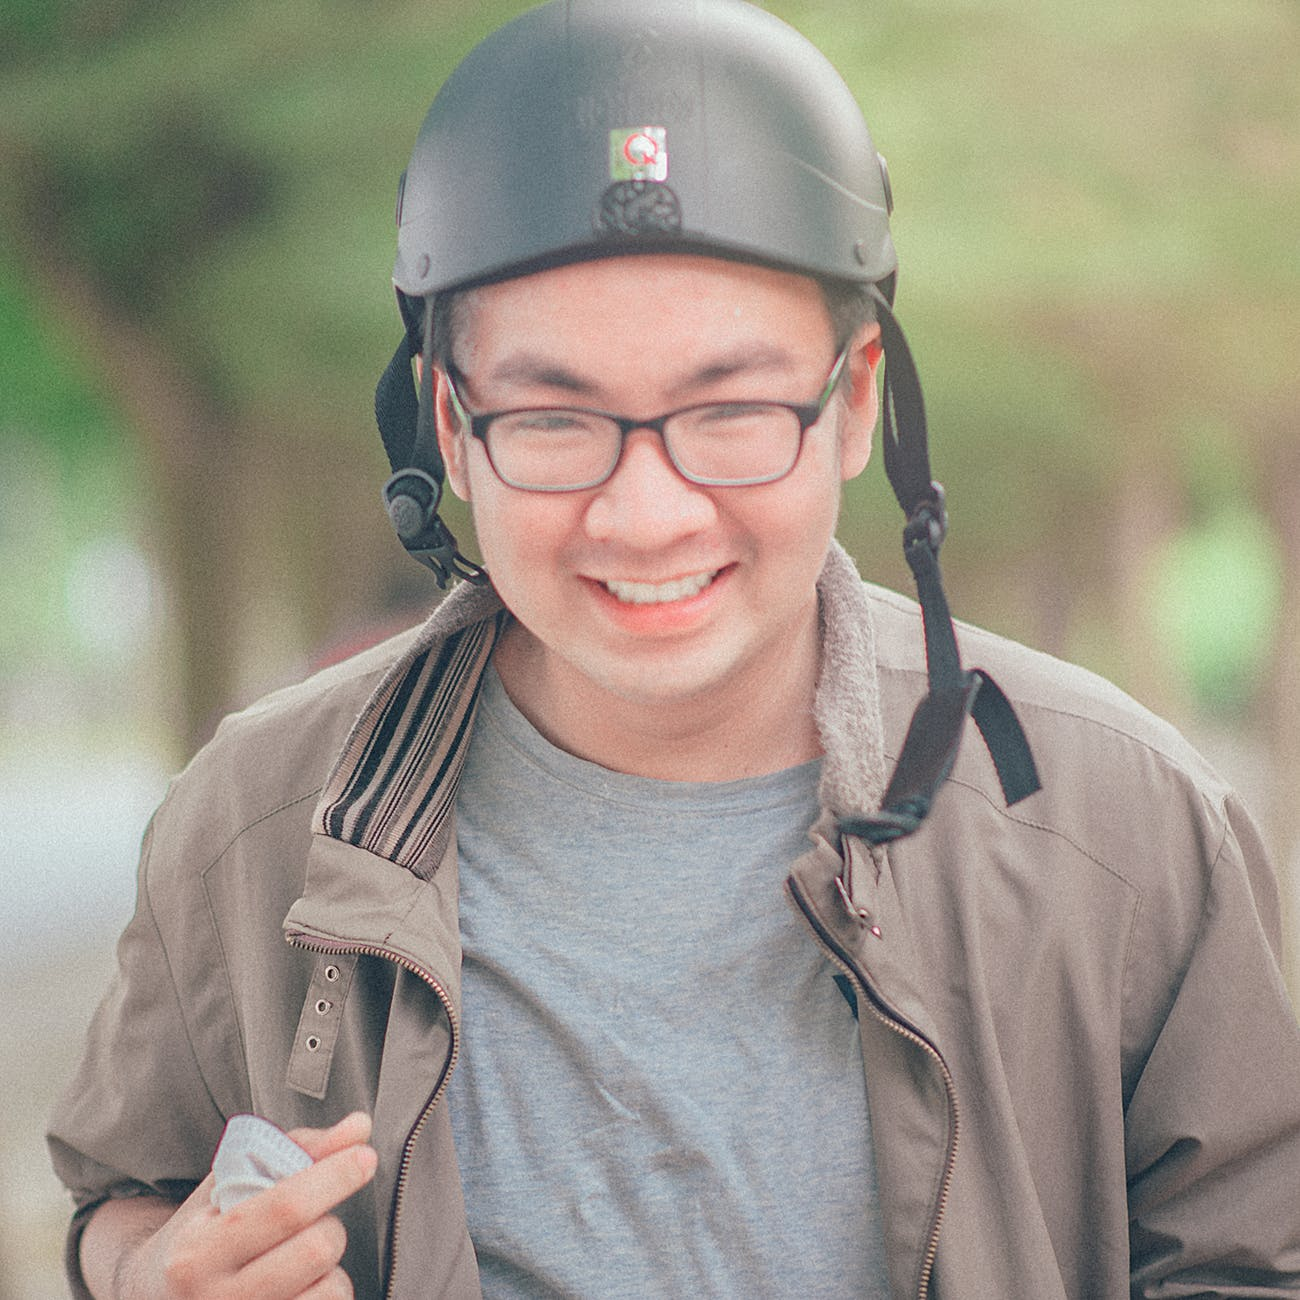 Man wearing black helmet photo